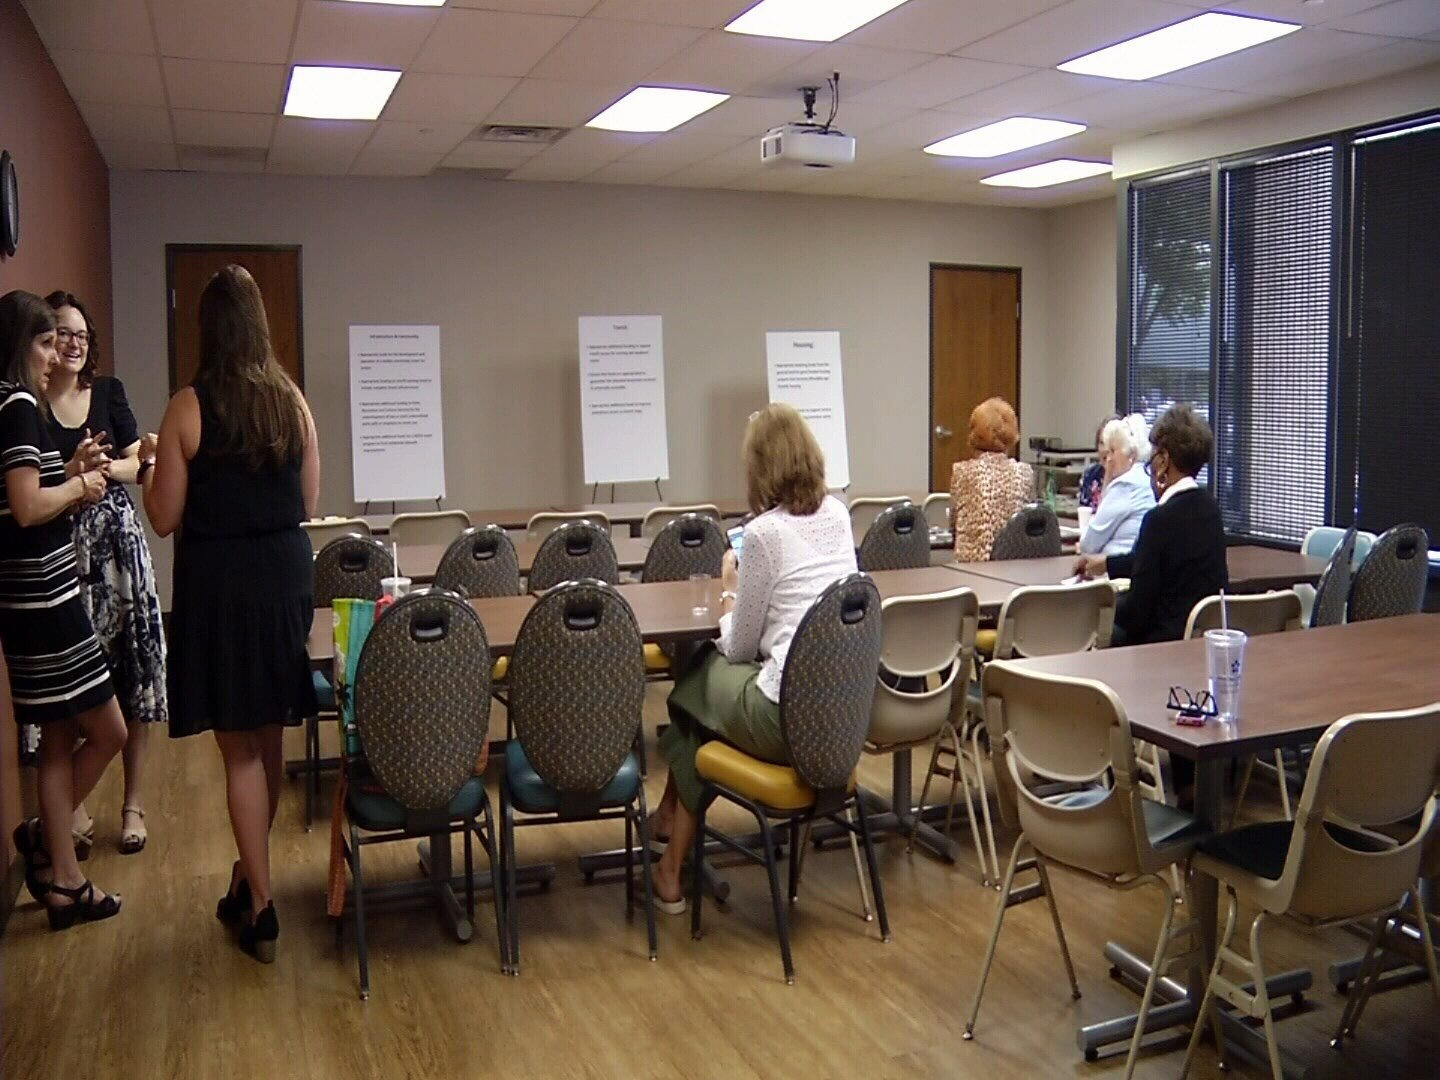 Silver Key Senior Services hosted the Colorado Springs Commission on Aging to gather feedback about budget priorities